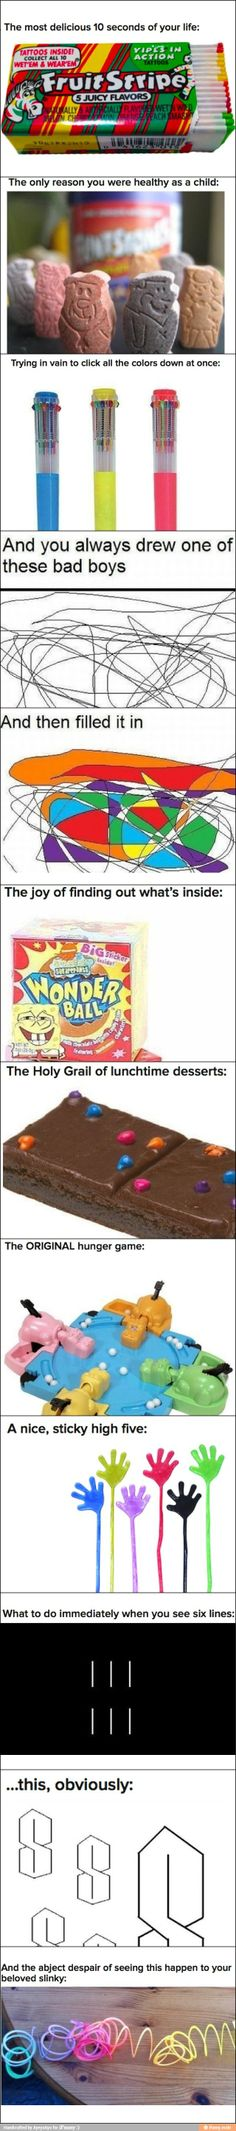 You know you had a great childhood when... -The original hunger games! Lol!!-